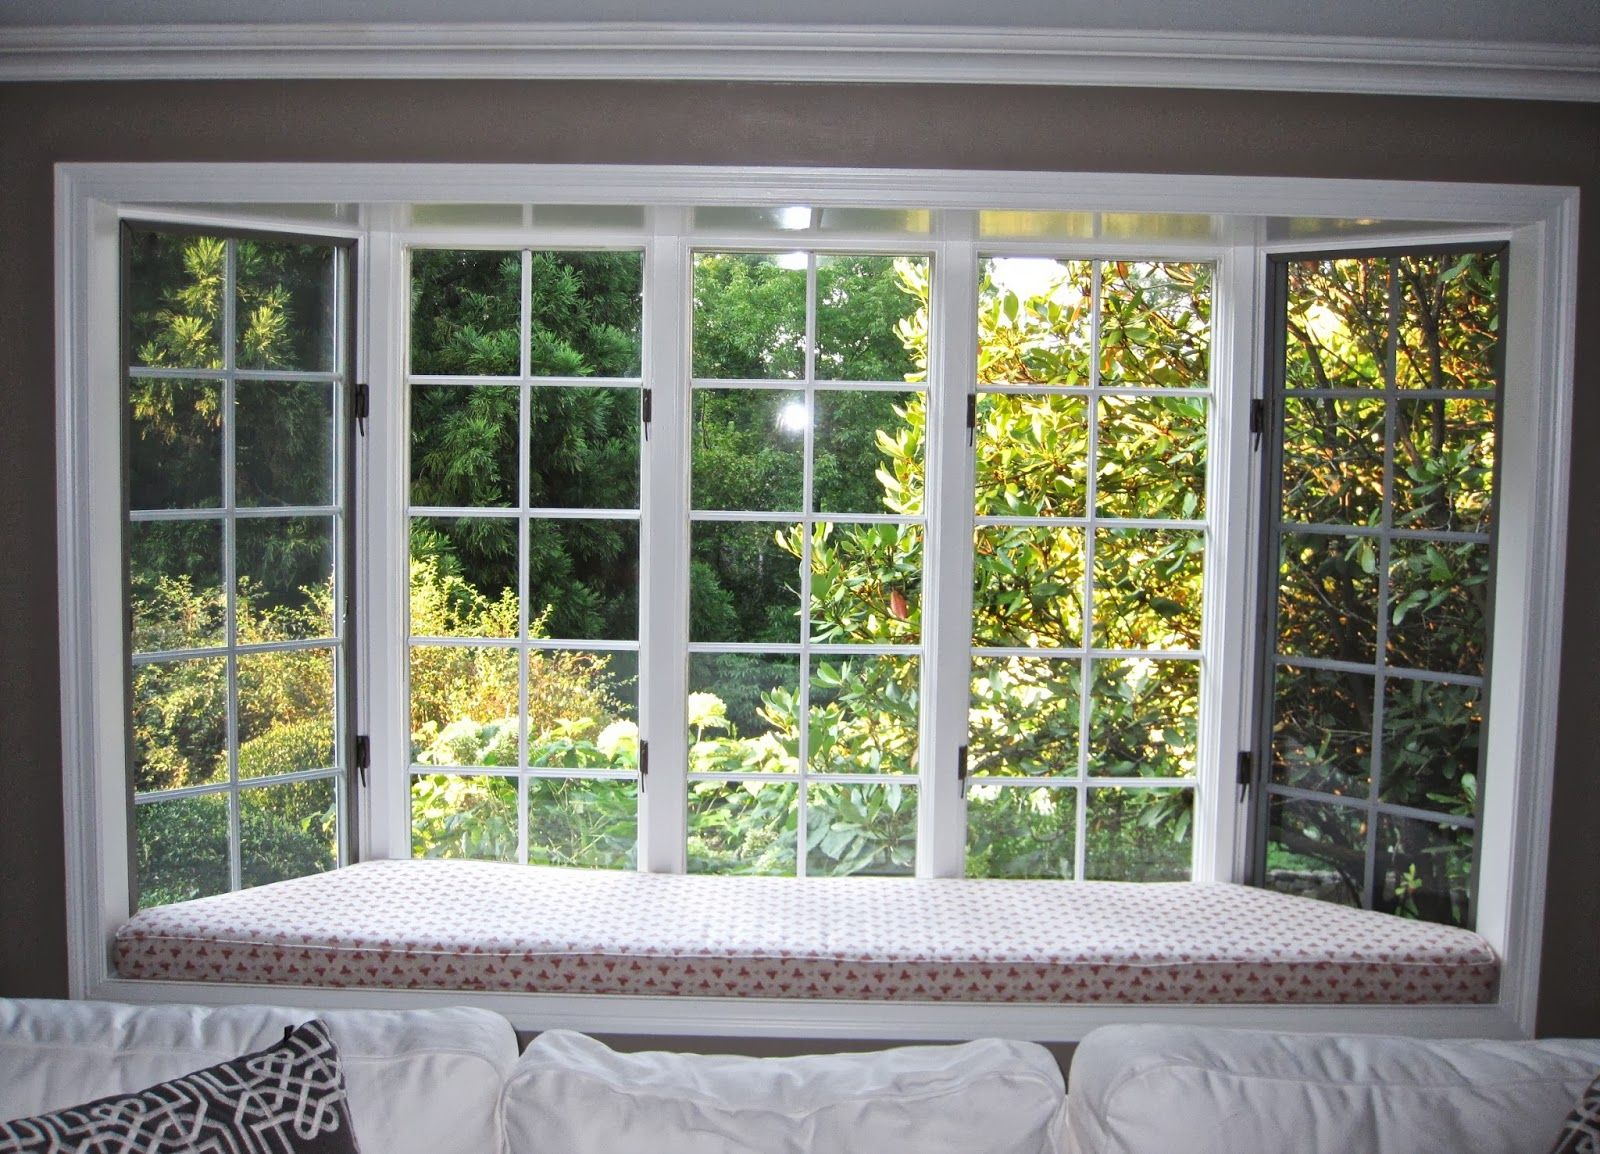 House windows ideas - Driven By D Cor A French Mattress Style Cushion For My Window Seat Home Windows